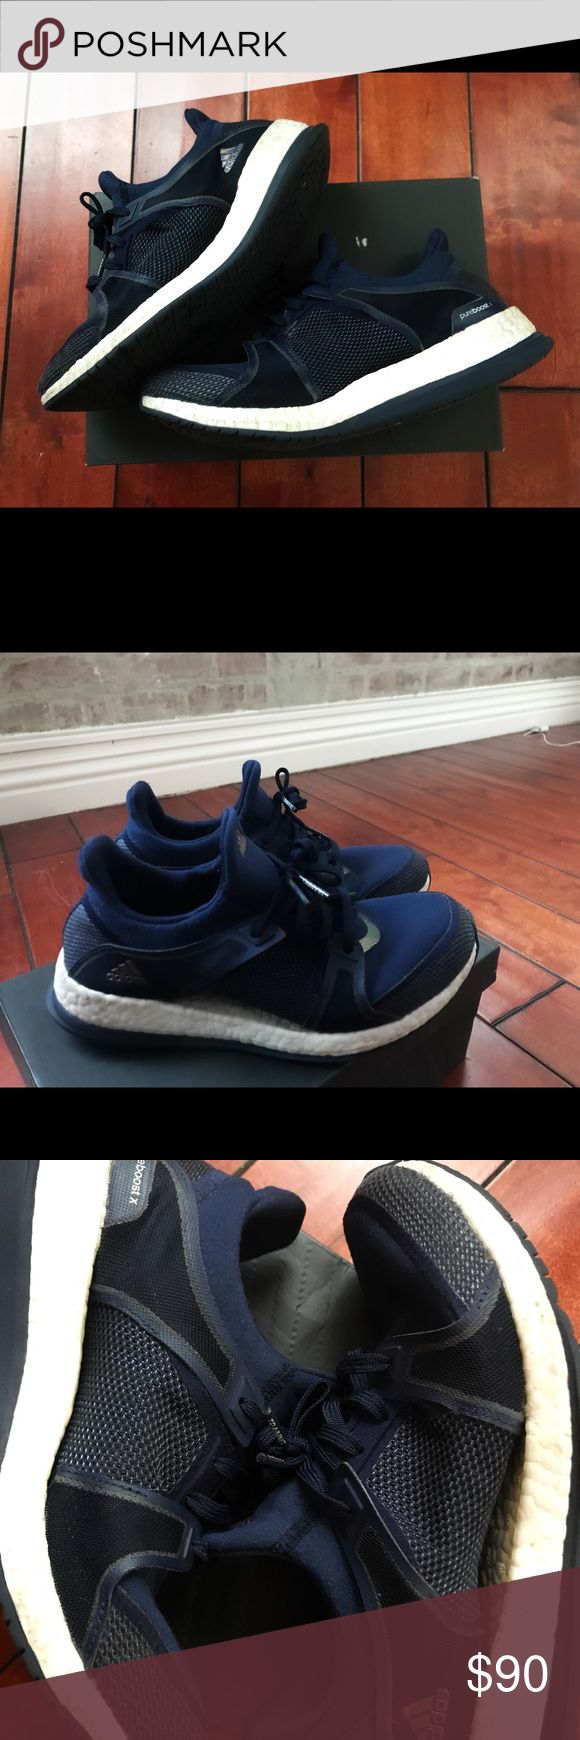 Adidas Pure Boosts Vibrant navy blue adidas pure boost sneakers. Super comfortable (feels like walking on clouds ☁️ ). Worn several times, no where near the end of their life. No holes, stains, etc. these photos where taken with them a bit dirty but will be cleaned prior to being shipped. Open to offers! adidas Shoes Athletic Shoes